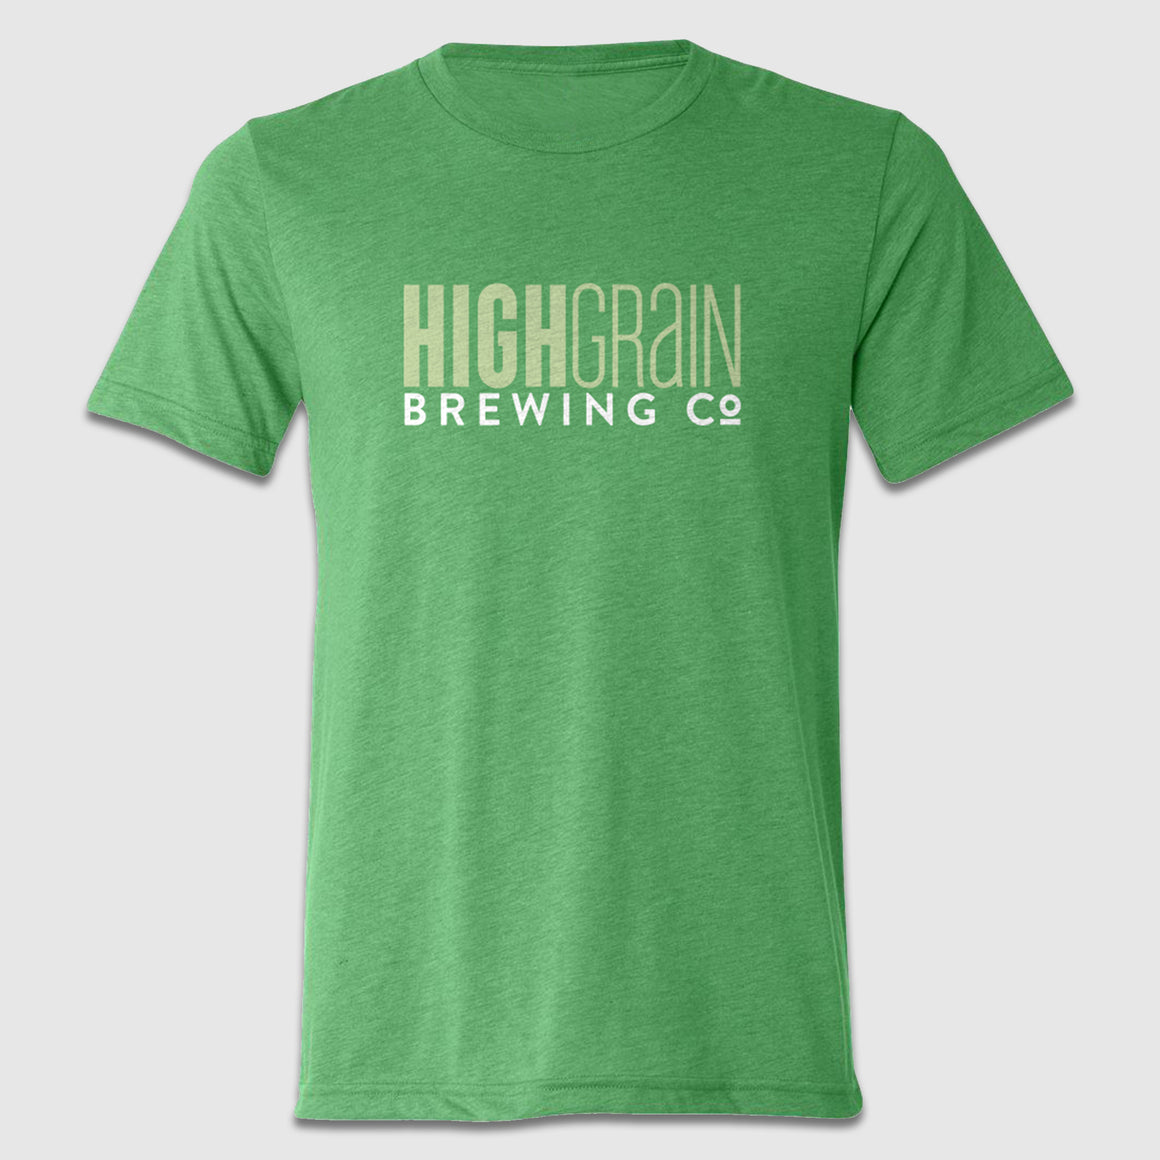 HighGrain Brewing Company Text Front & Back Tee Design - Cincy Shirts